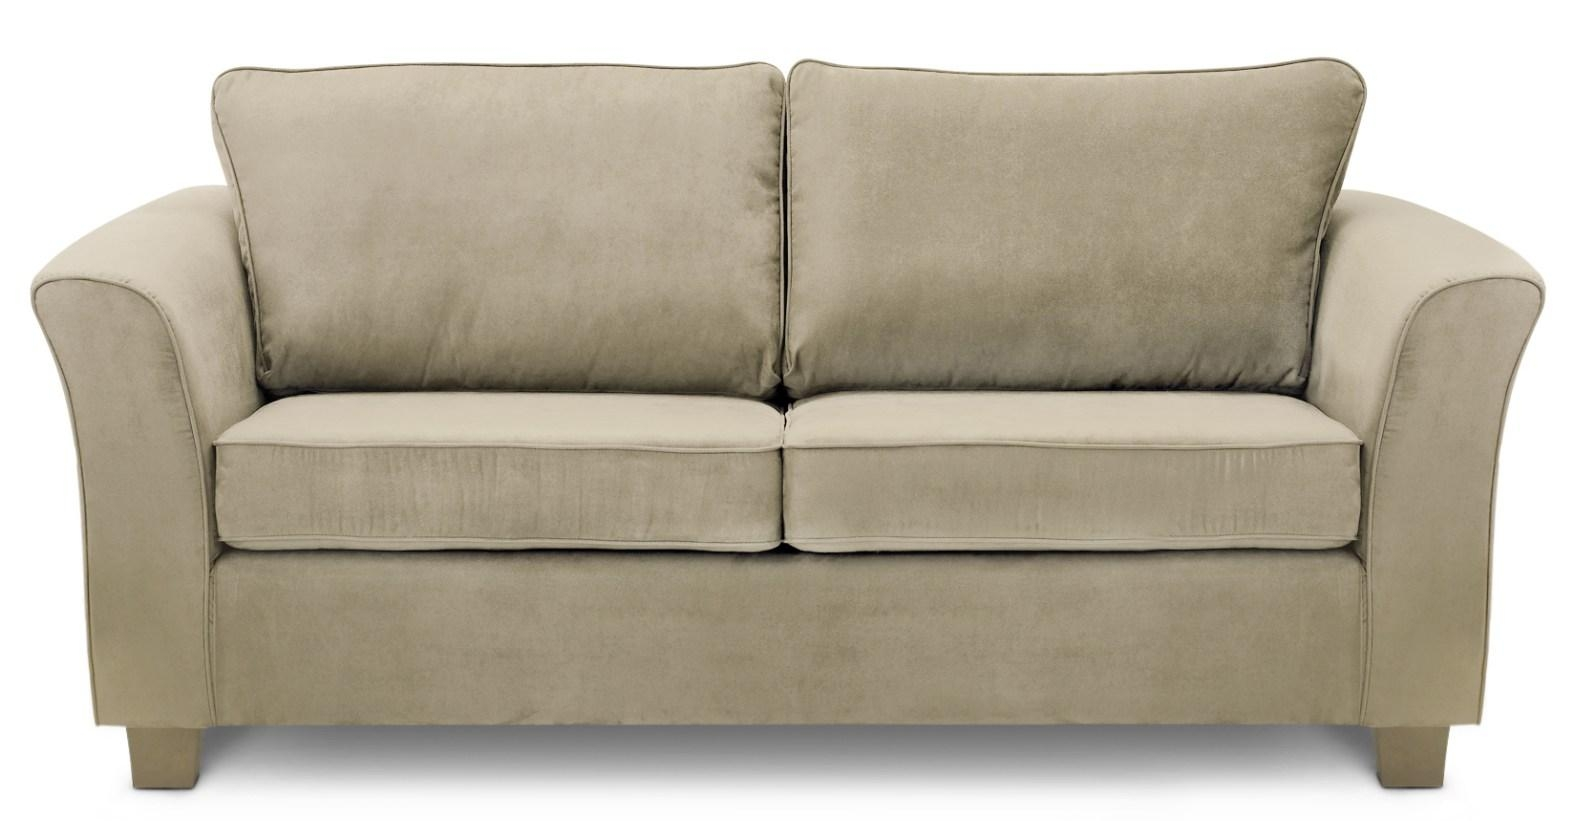 Sofa : Ikea Kivik Sofa Series Review Comfort Works Blog & Design In Lillberg Sofa Covers (Image 17 of 20)